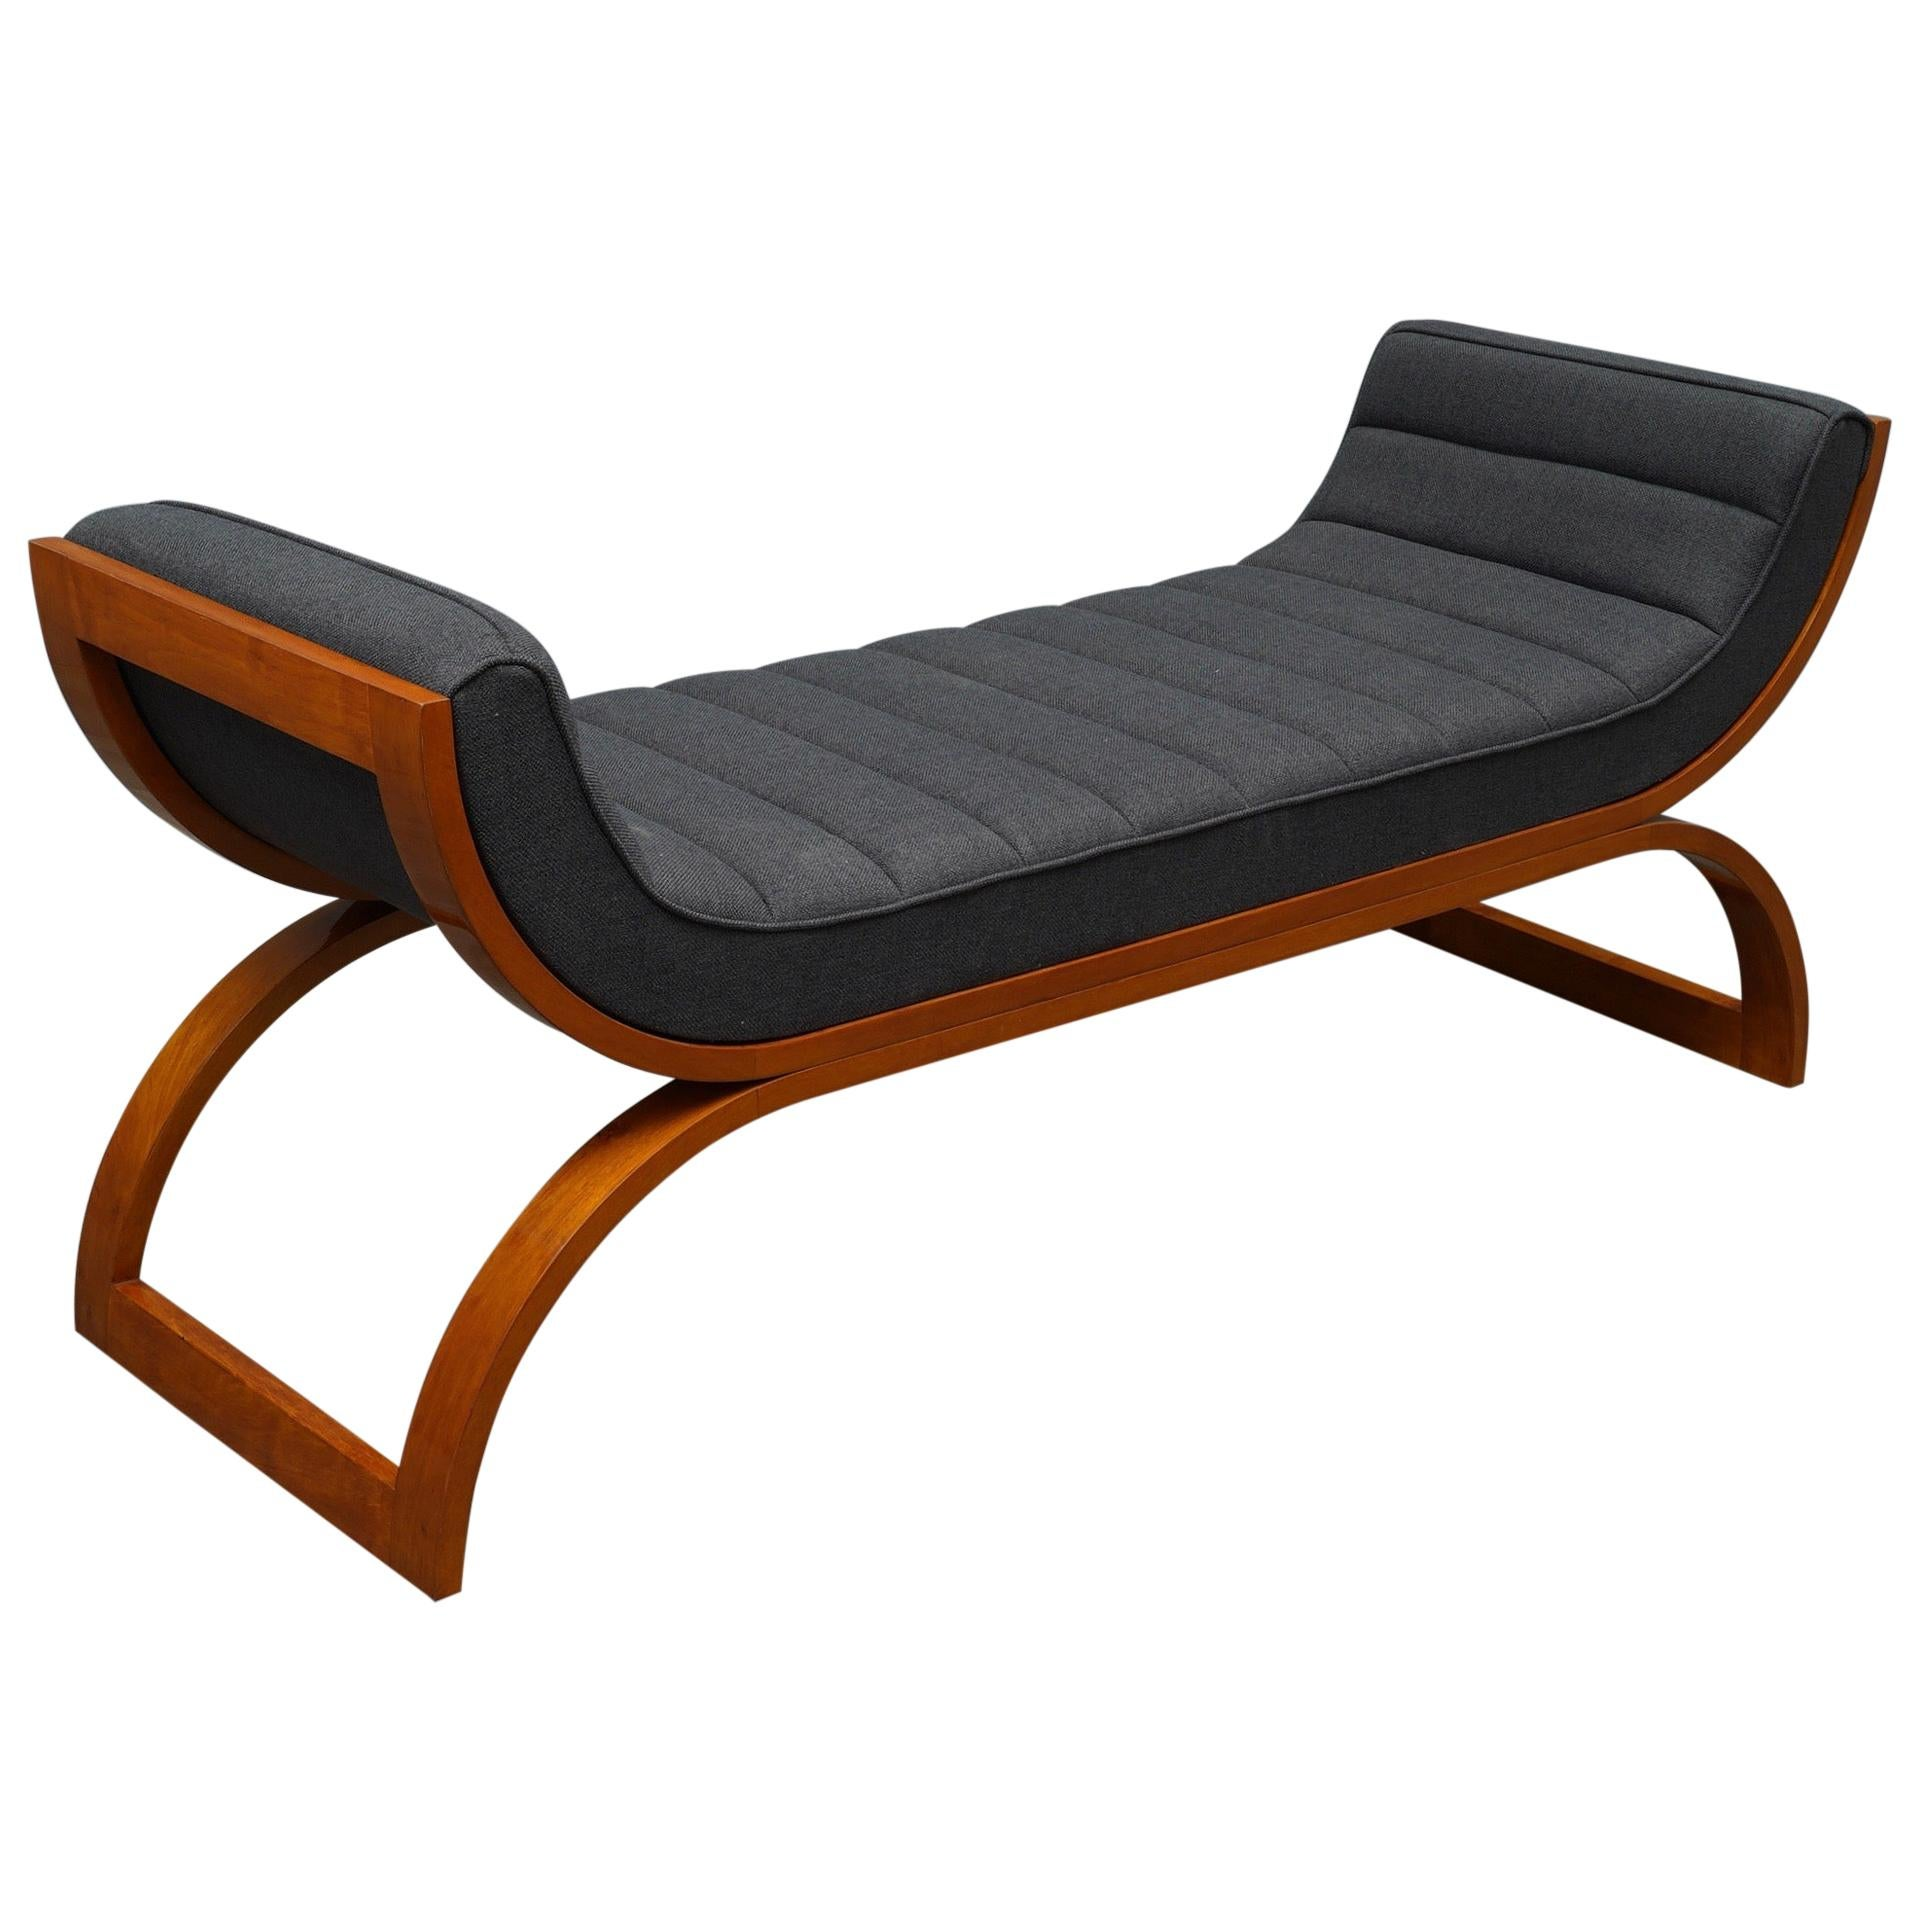 Midcentury Cherry Wood Daybed, 1950